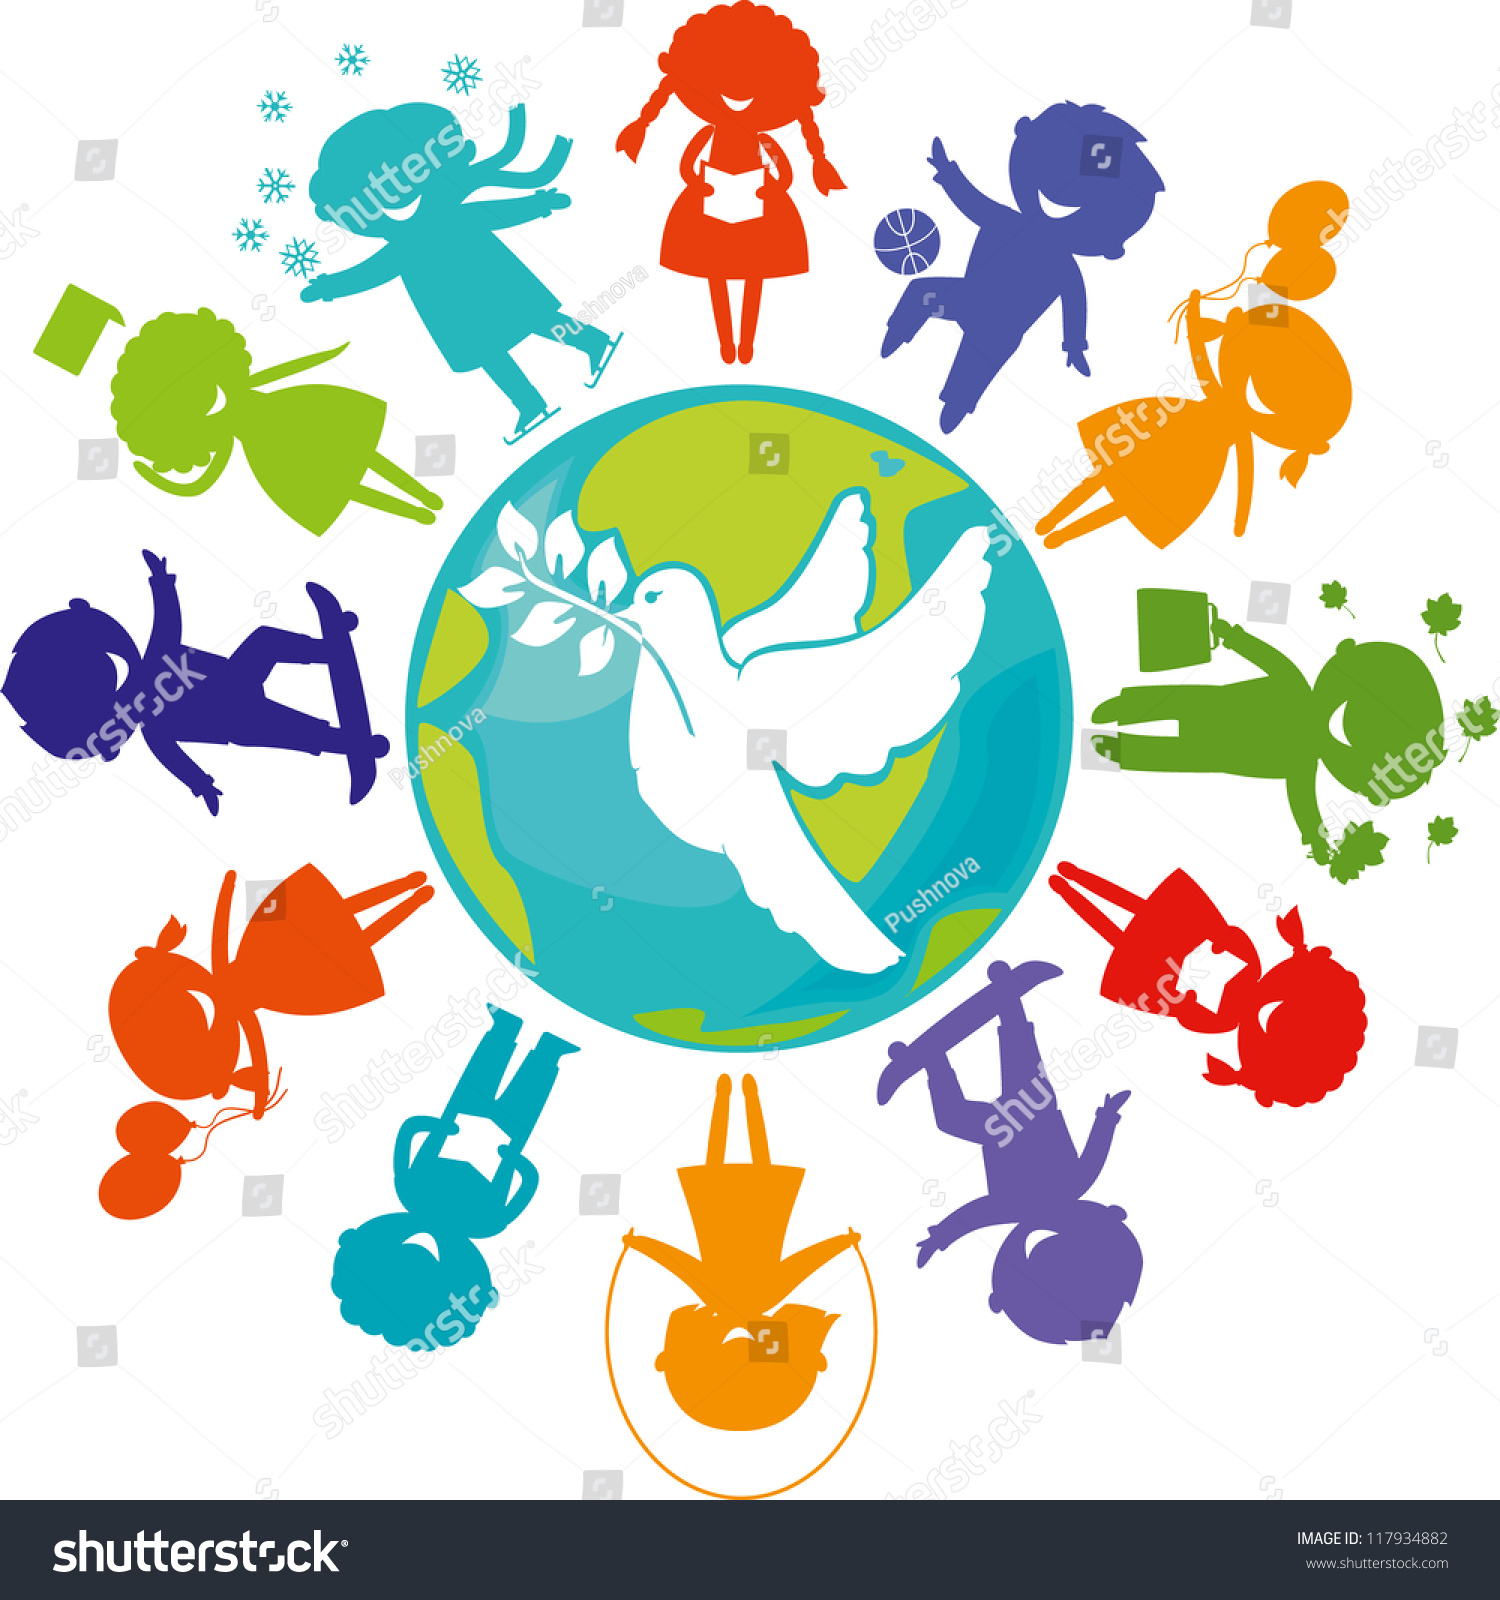 world peace posters for kids